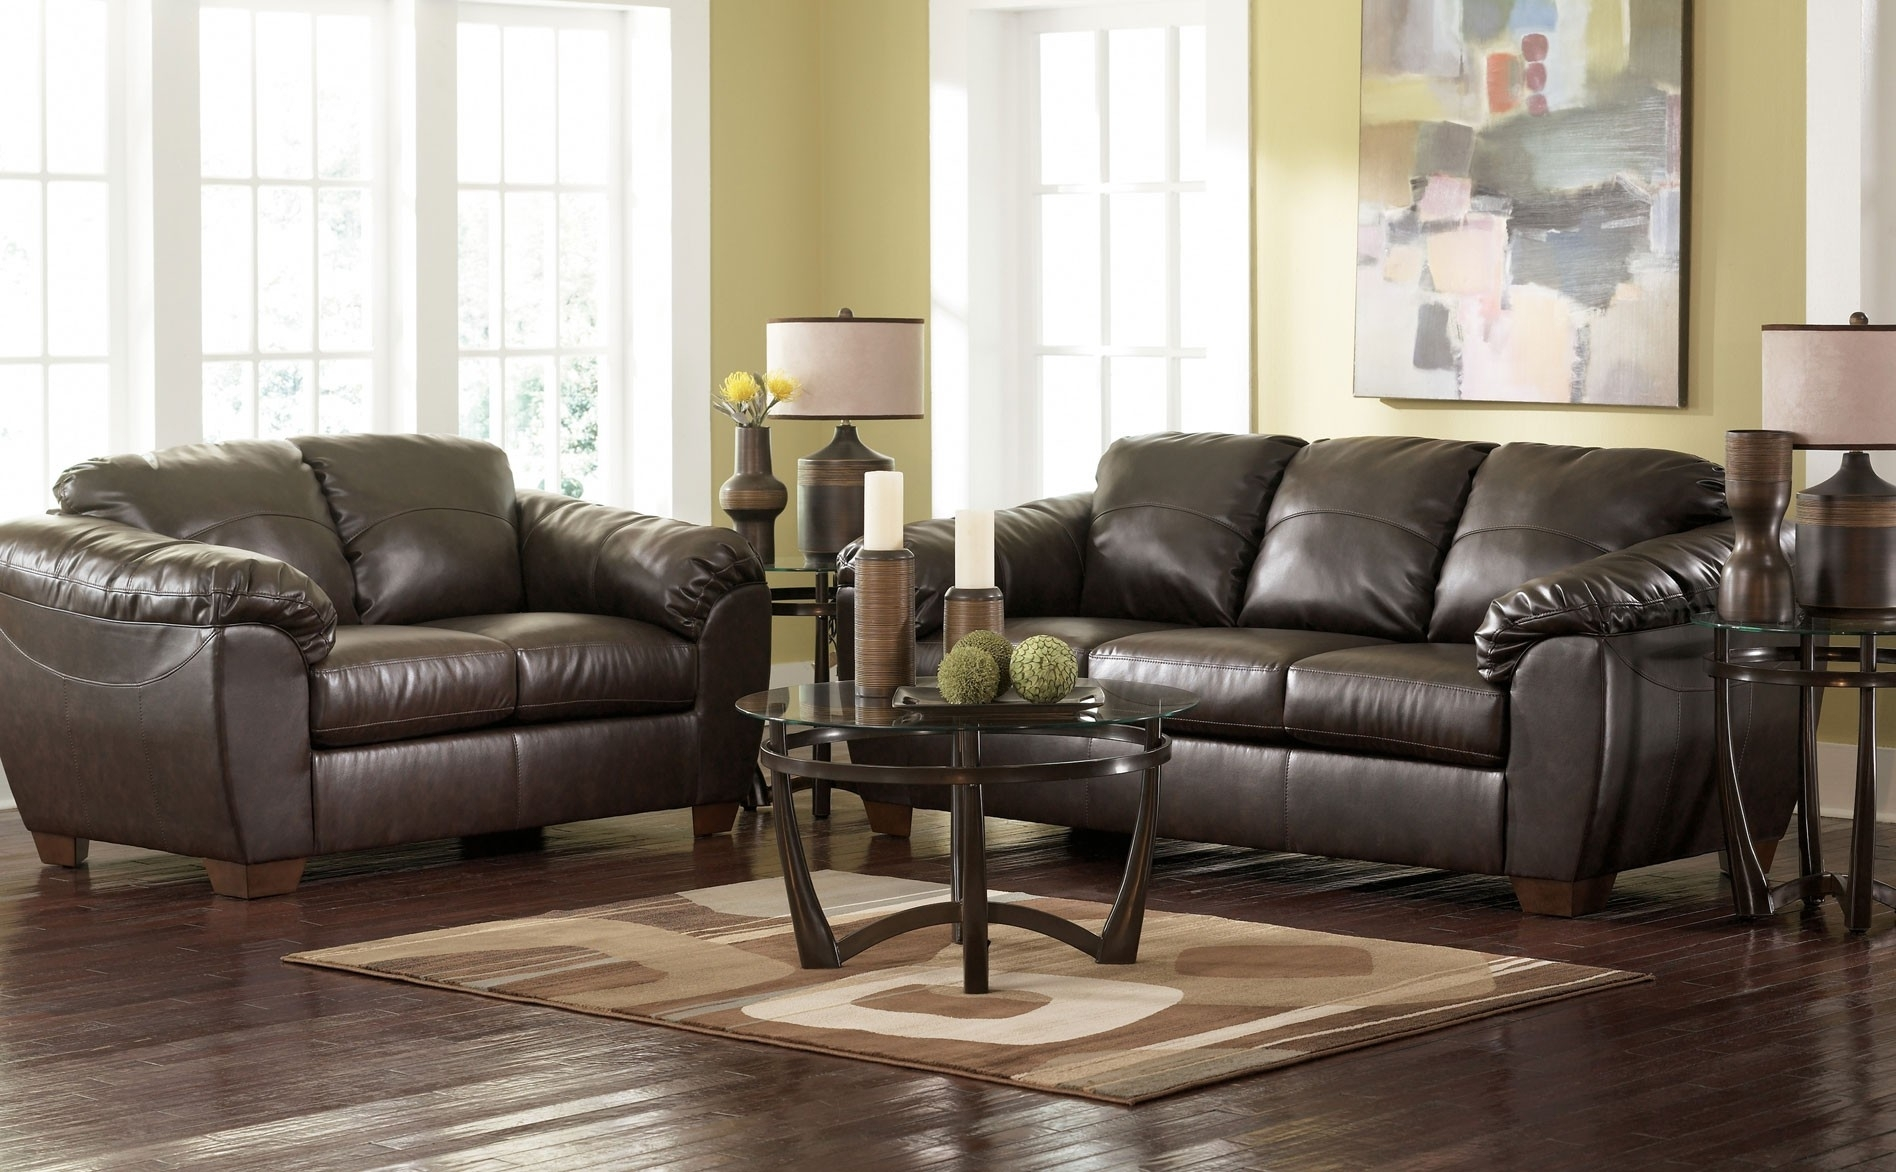 Furniture: Discount Sofas | Inexpensive Couches | Cheap Sectionals With Sears Sofas (View 5 of 10)